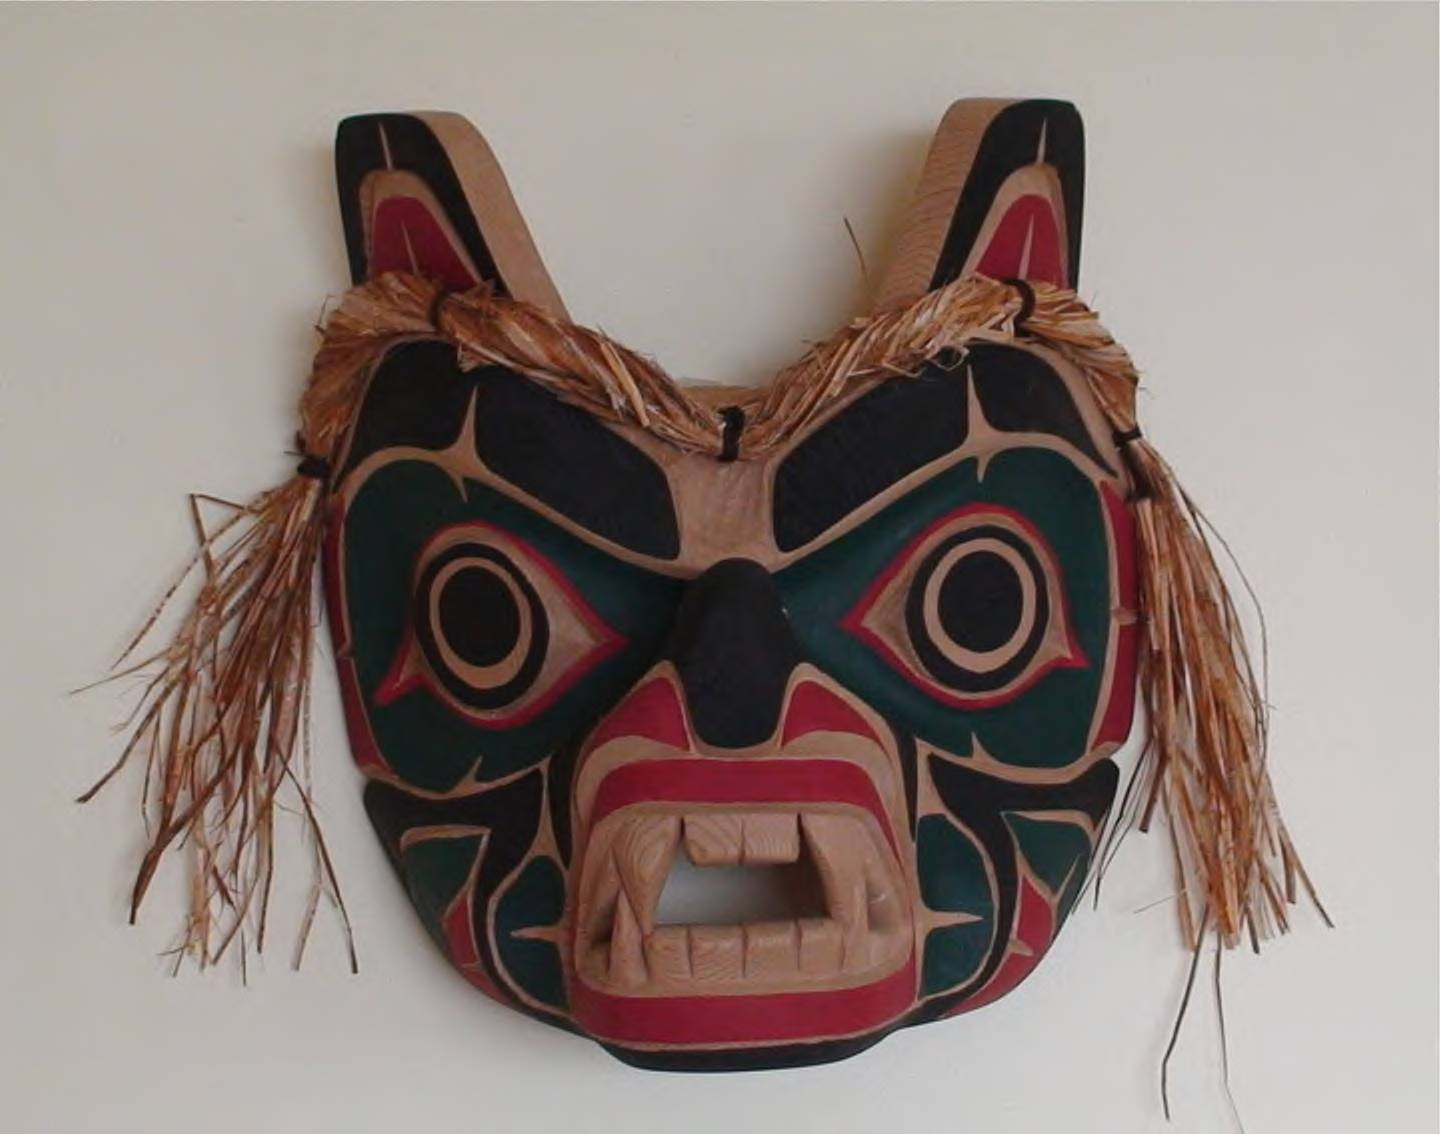 Native American Tribal Masks http://mississippi-spi.blogspot.com/2010/10/native-american-death-mask.html